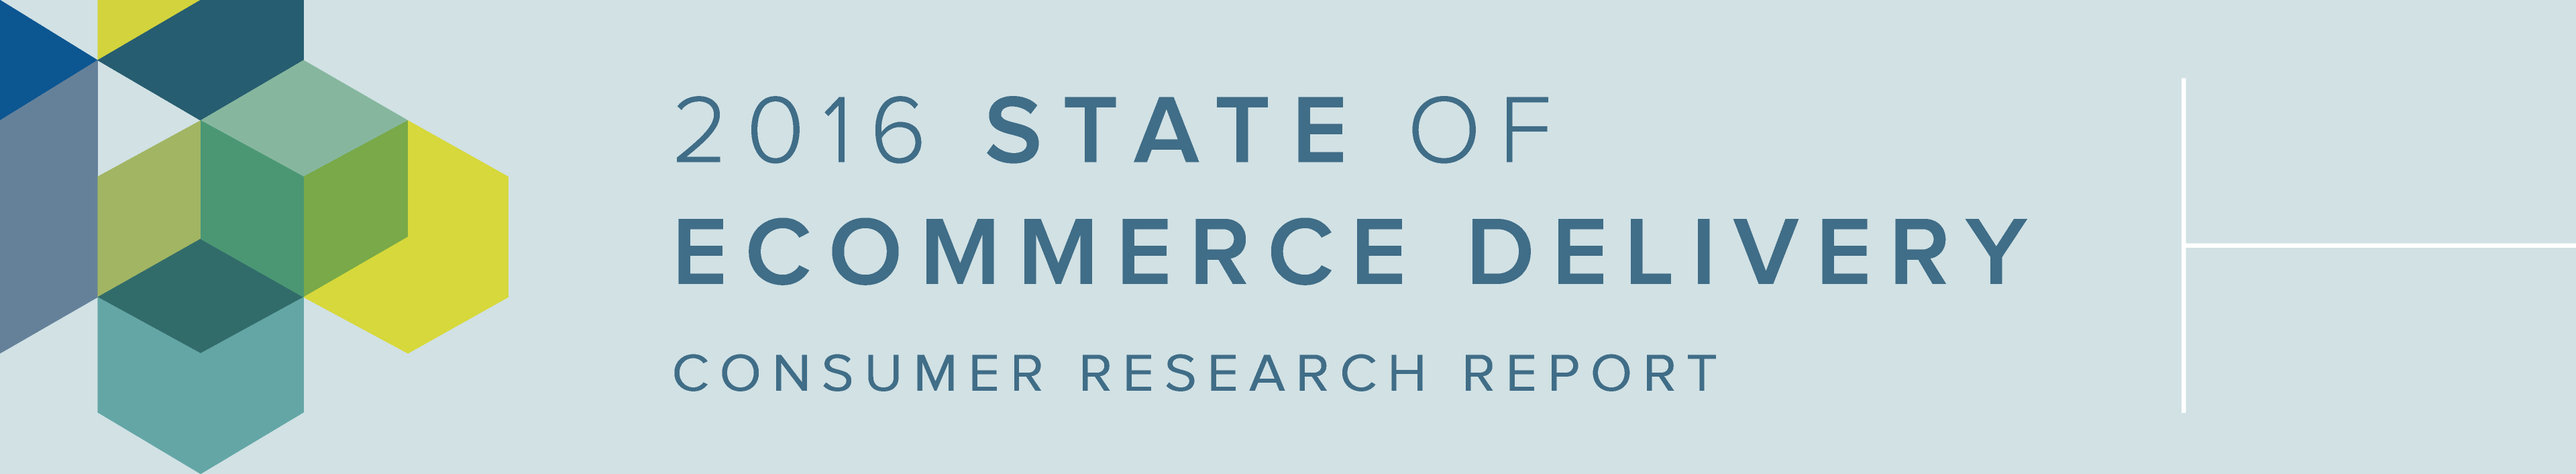 2016_state_ecommerce_delivery_metapack_report-1